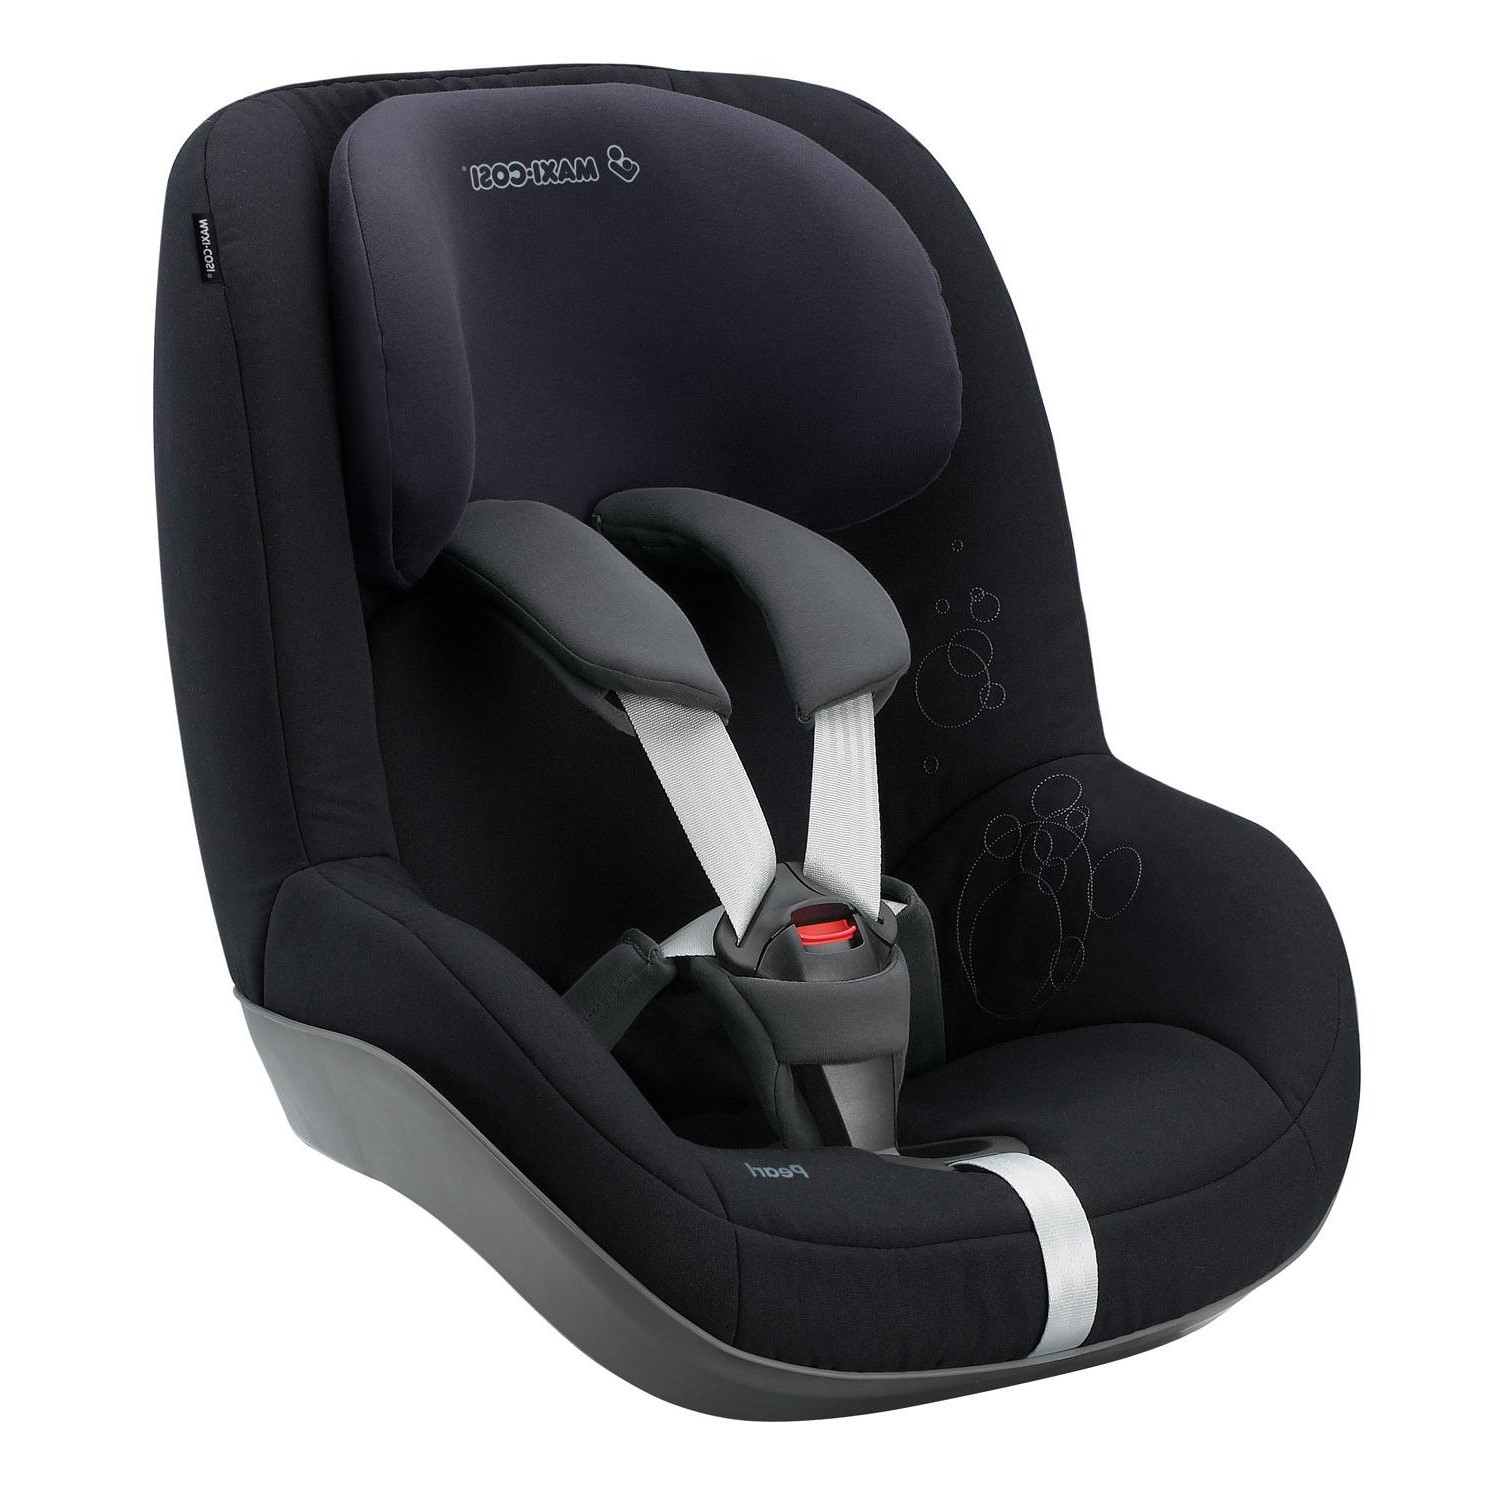 maxi cosi pearl car seat best for baby. Black Bedroom Furniture Sets. Home Design Ideas